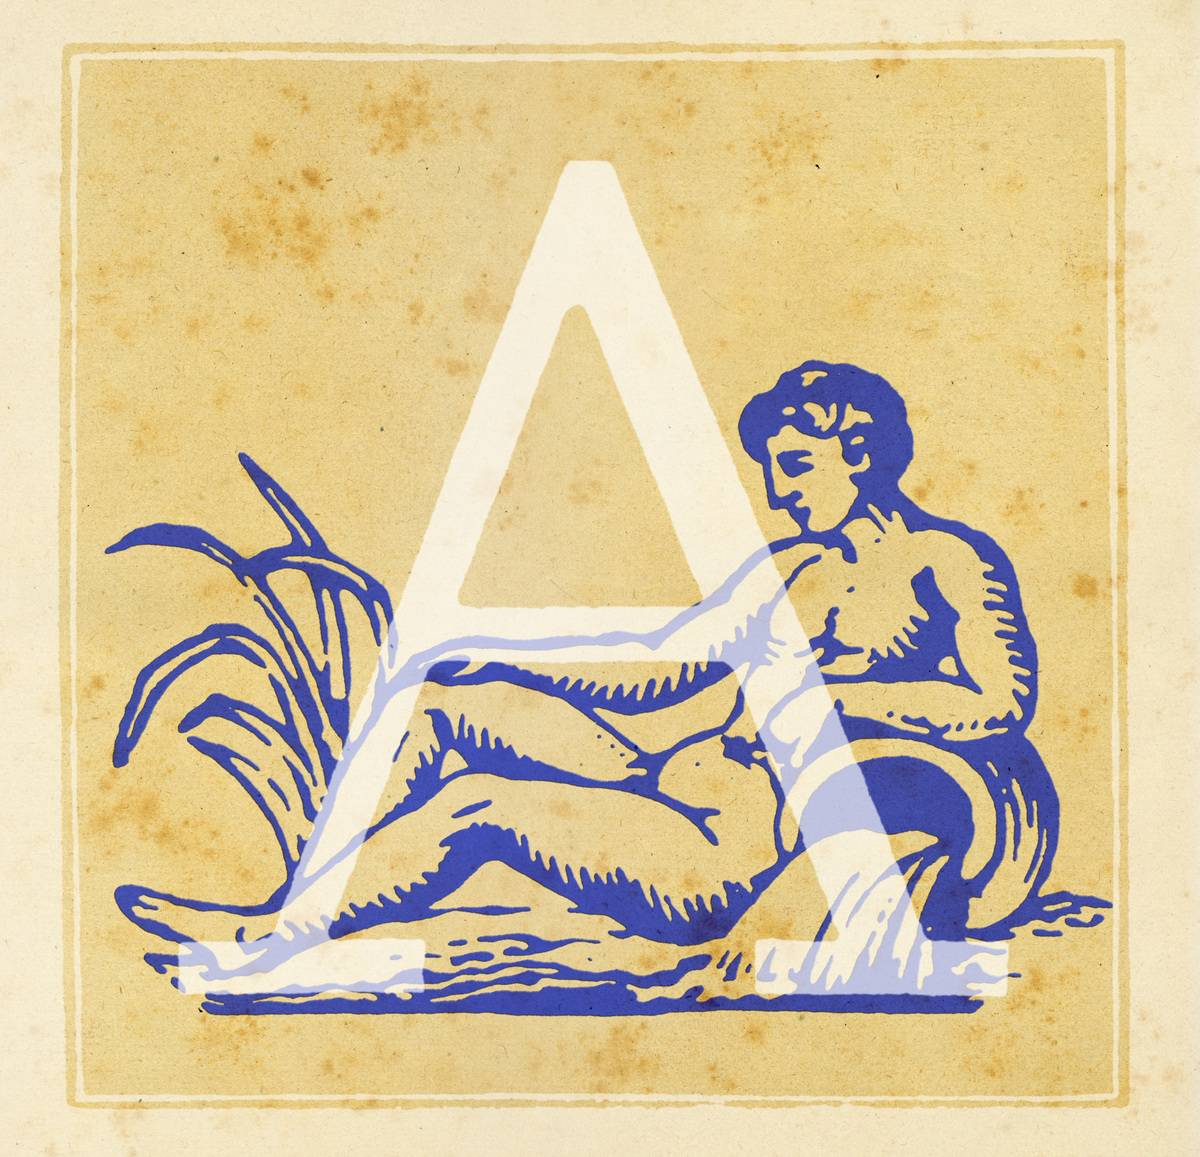 Capital letter A with Aquarius zodiac sign